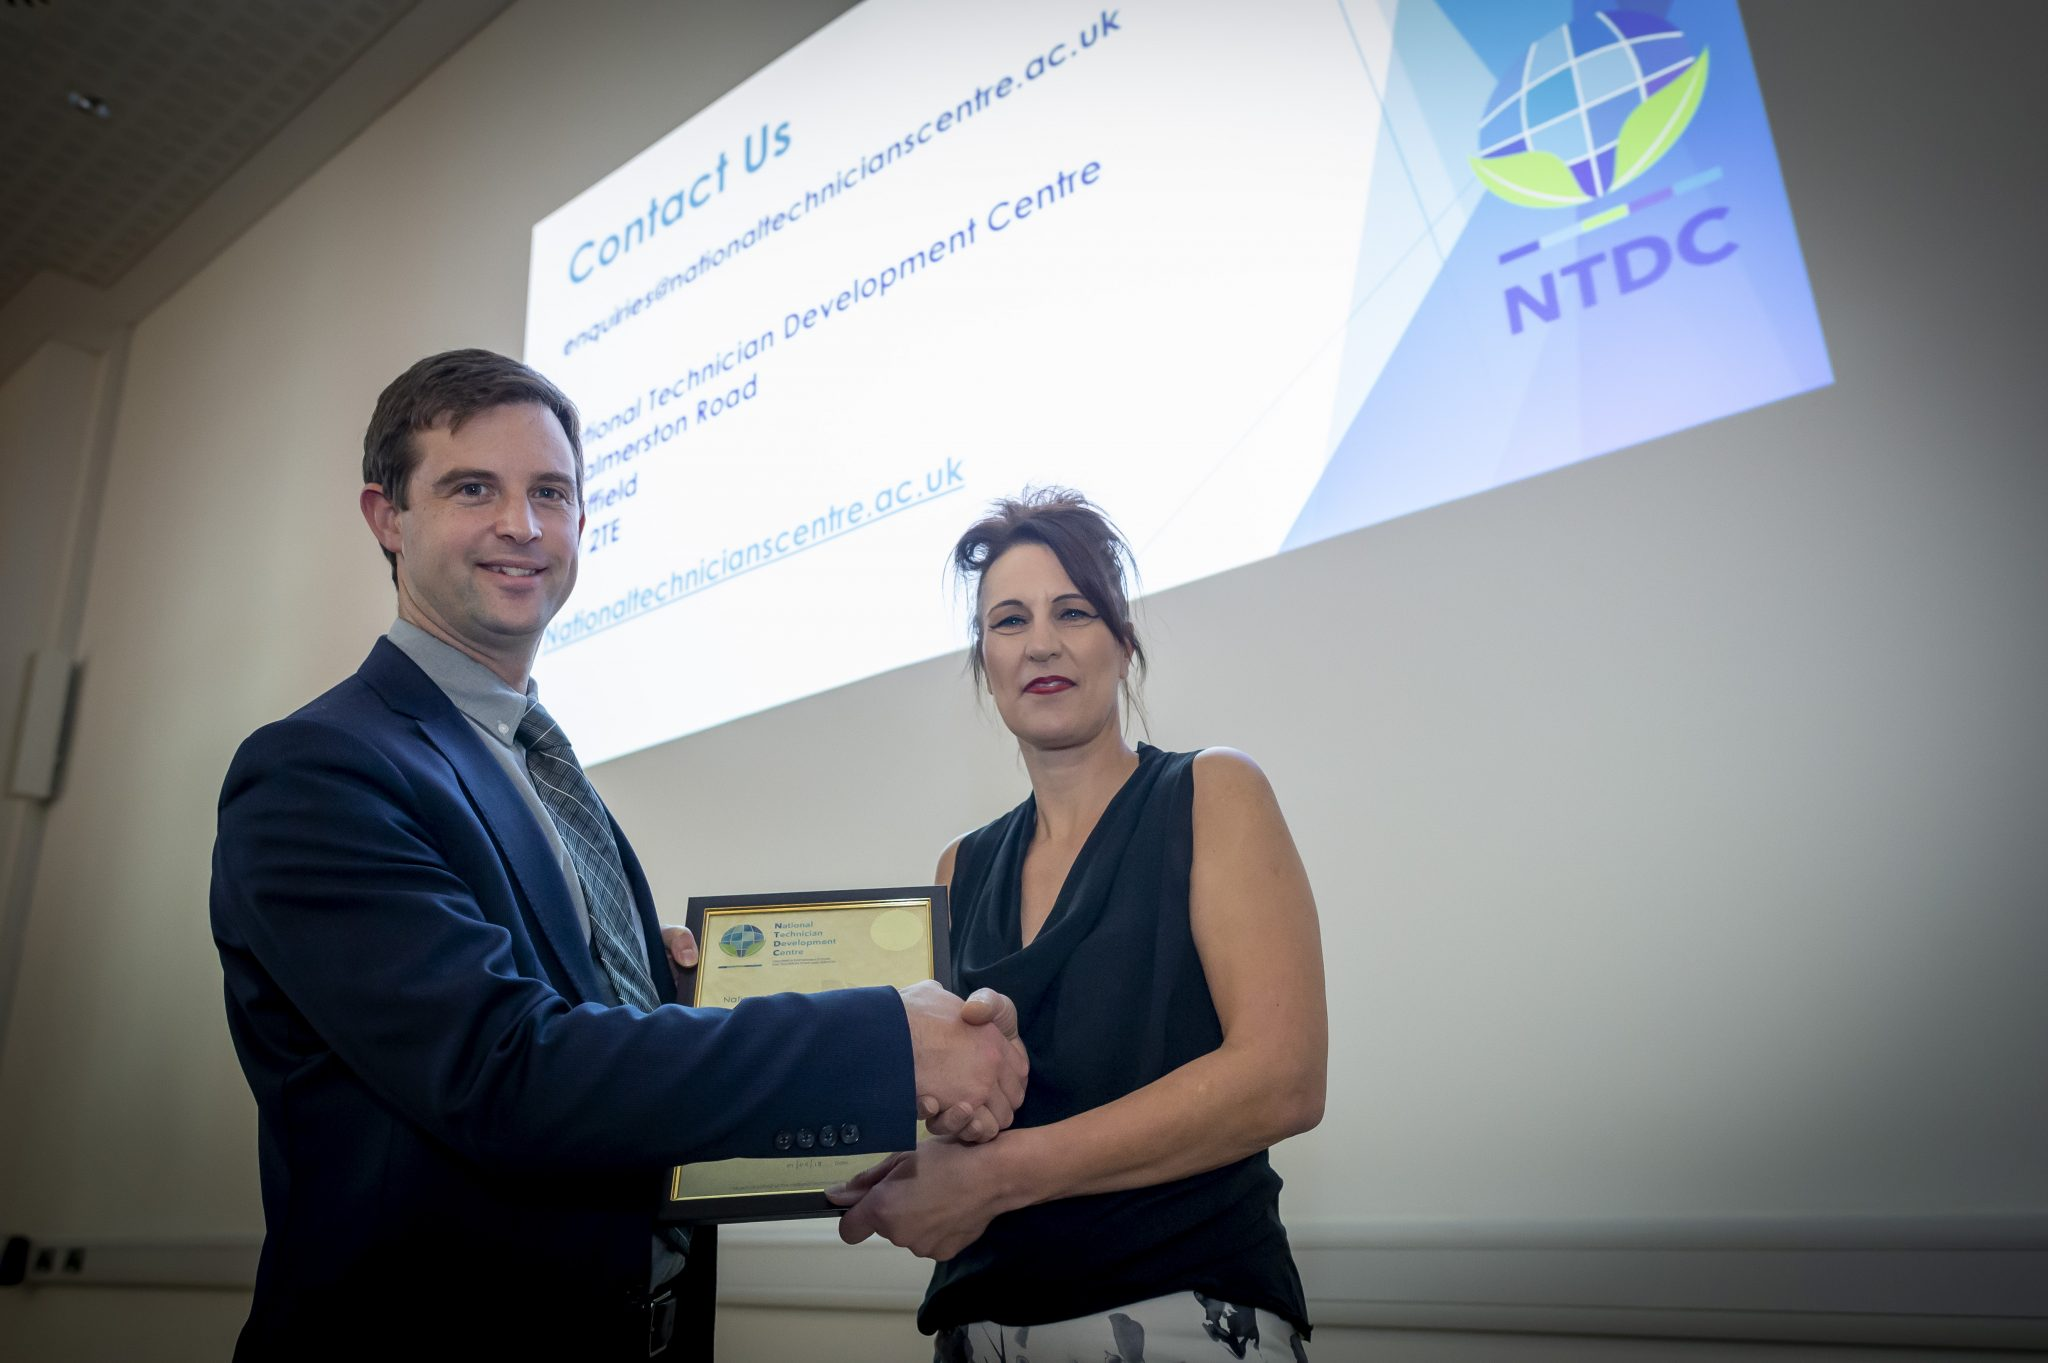 DMU presented with NTDC partner certificate